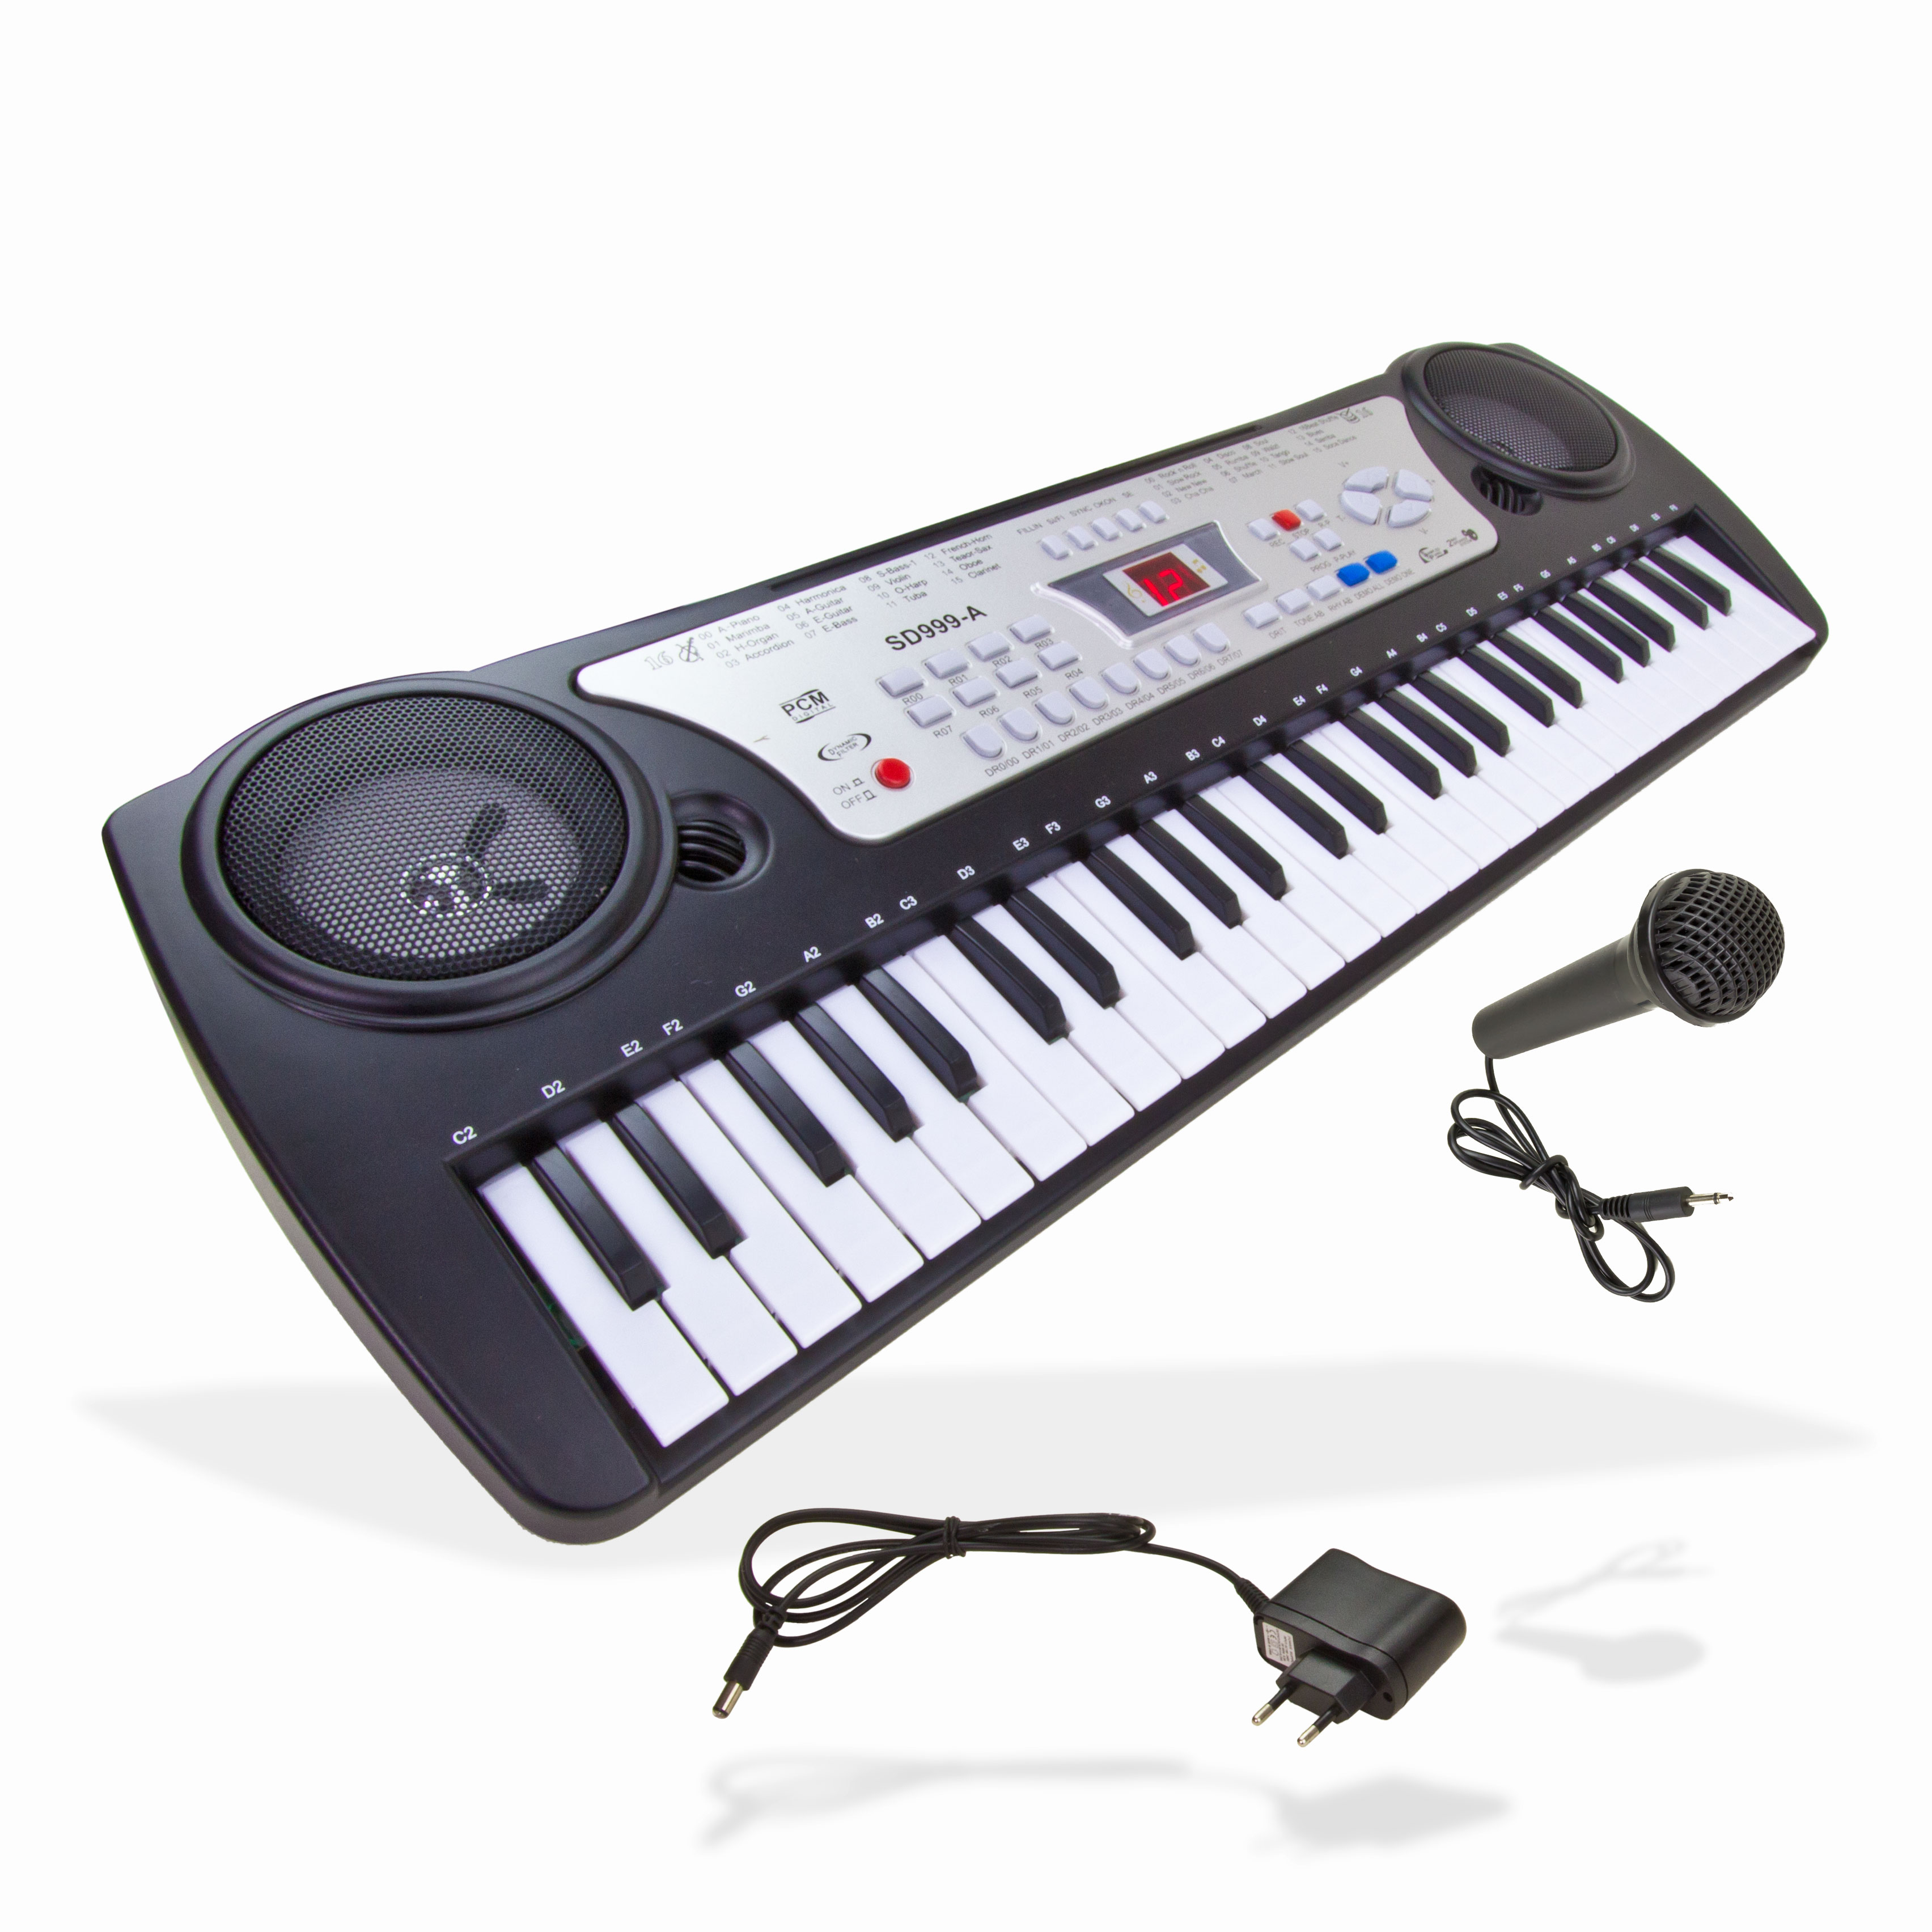 Kinder-Fun-Keyboard-Orgel-Klavier-Piano-54-Tasten-Batterie-Keybord-NEU-12425